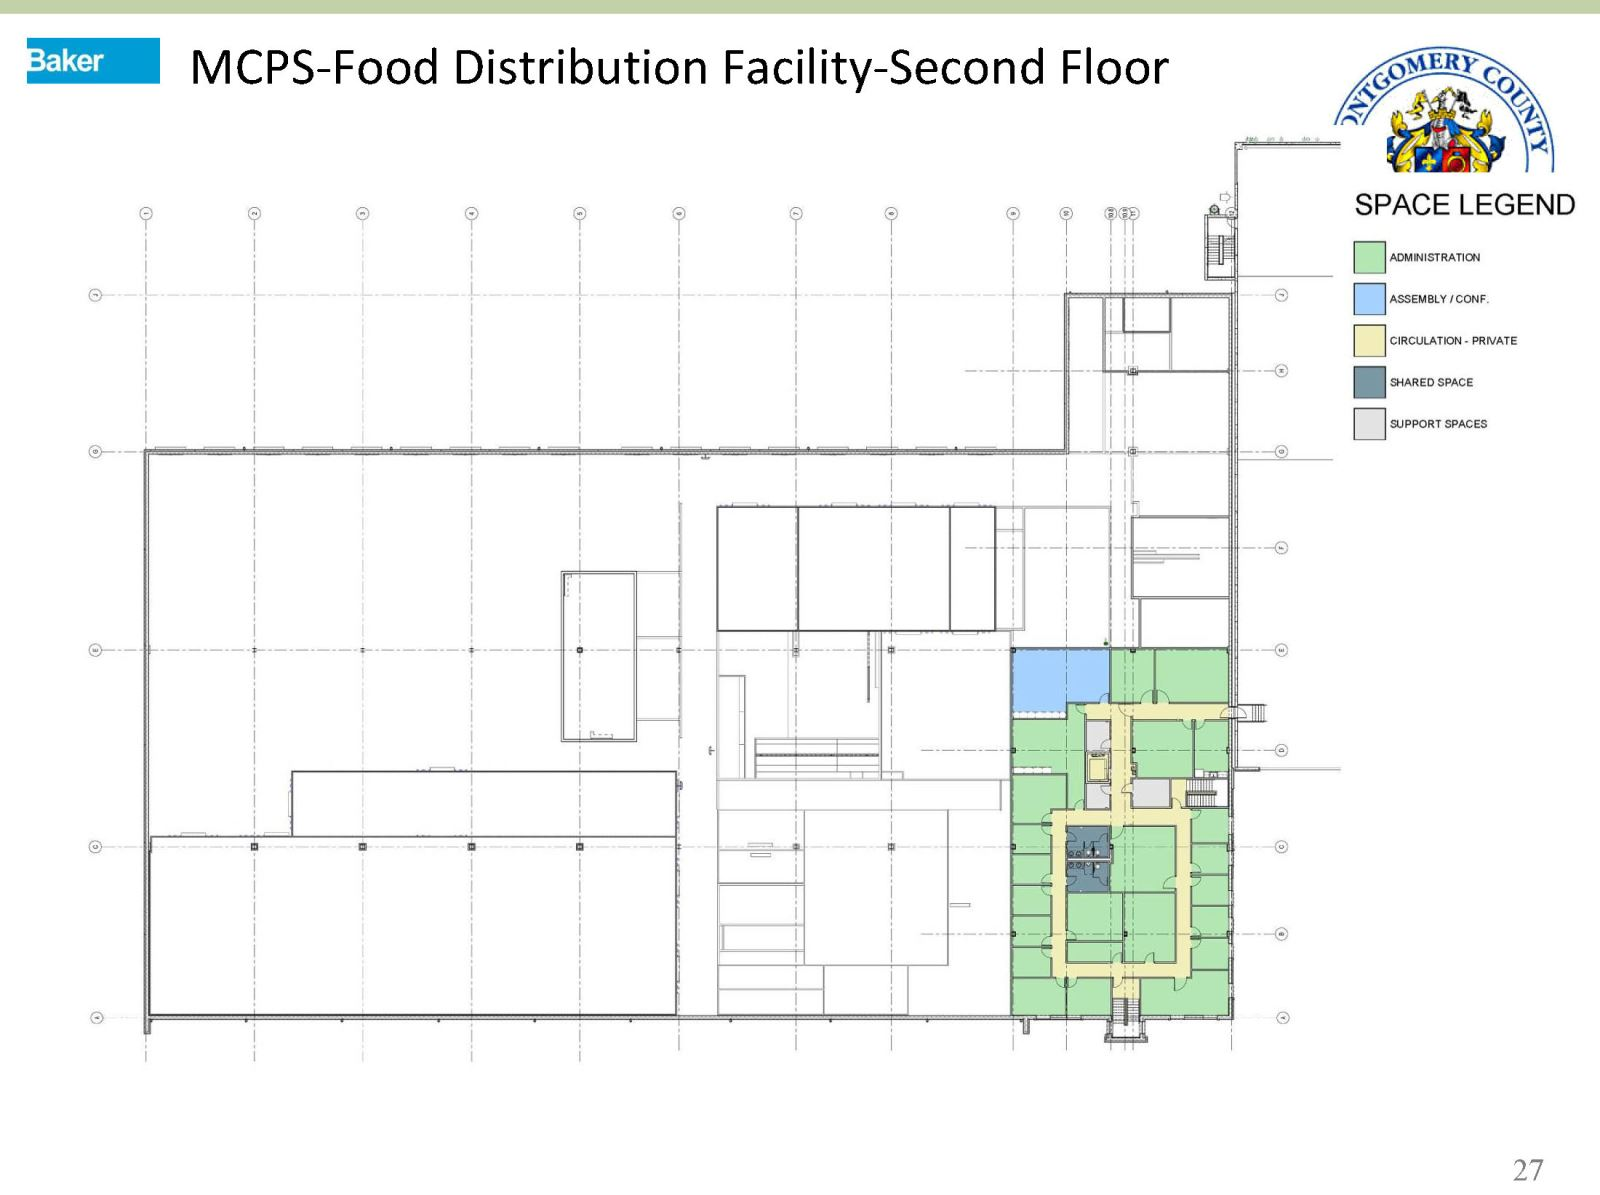 MASP & PSTA Project 2: MCPS Food Distribution Relocation - Food Distribution Facility- 2nd Floor